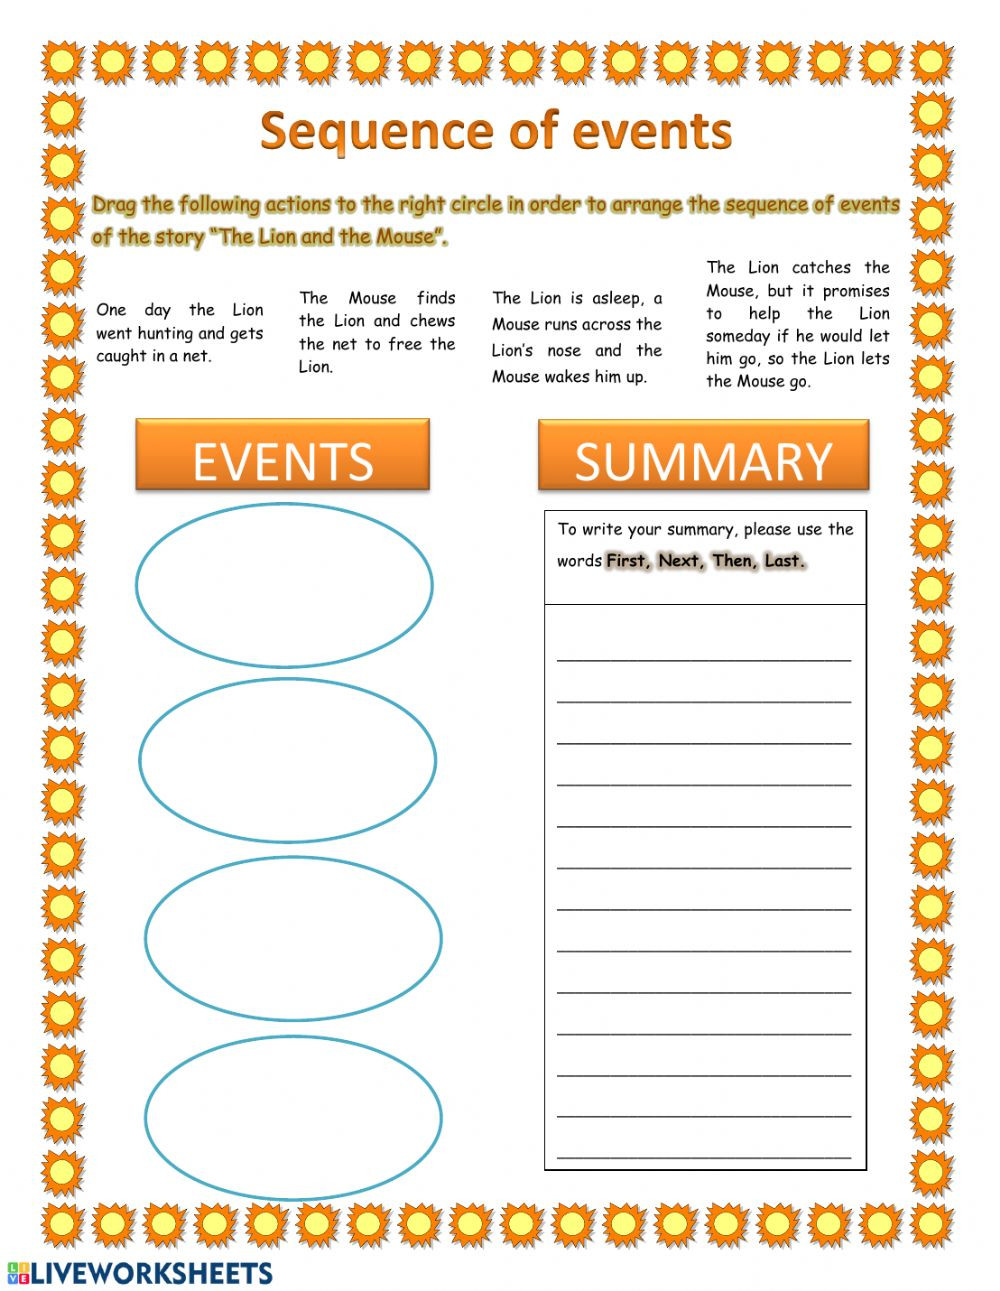 Sequence Of events Worksheet Sequence Of events and Summary Interactive Worksheet